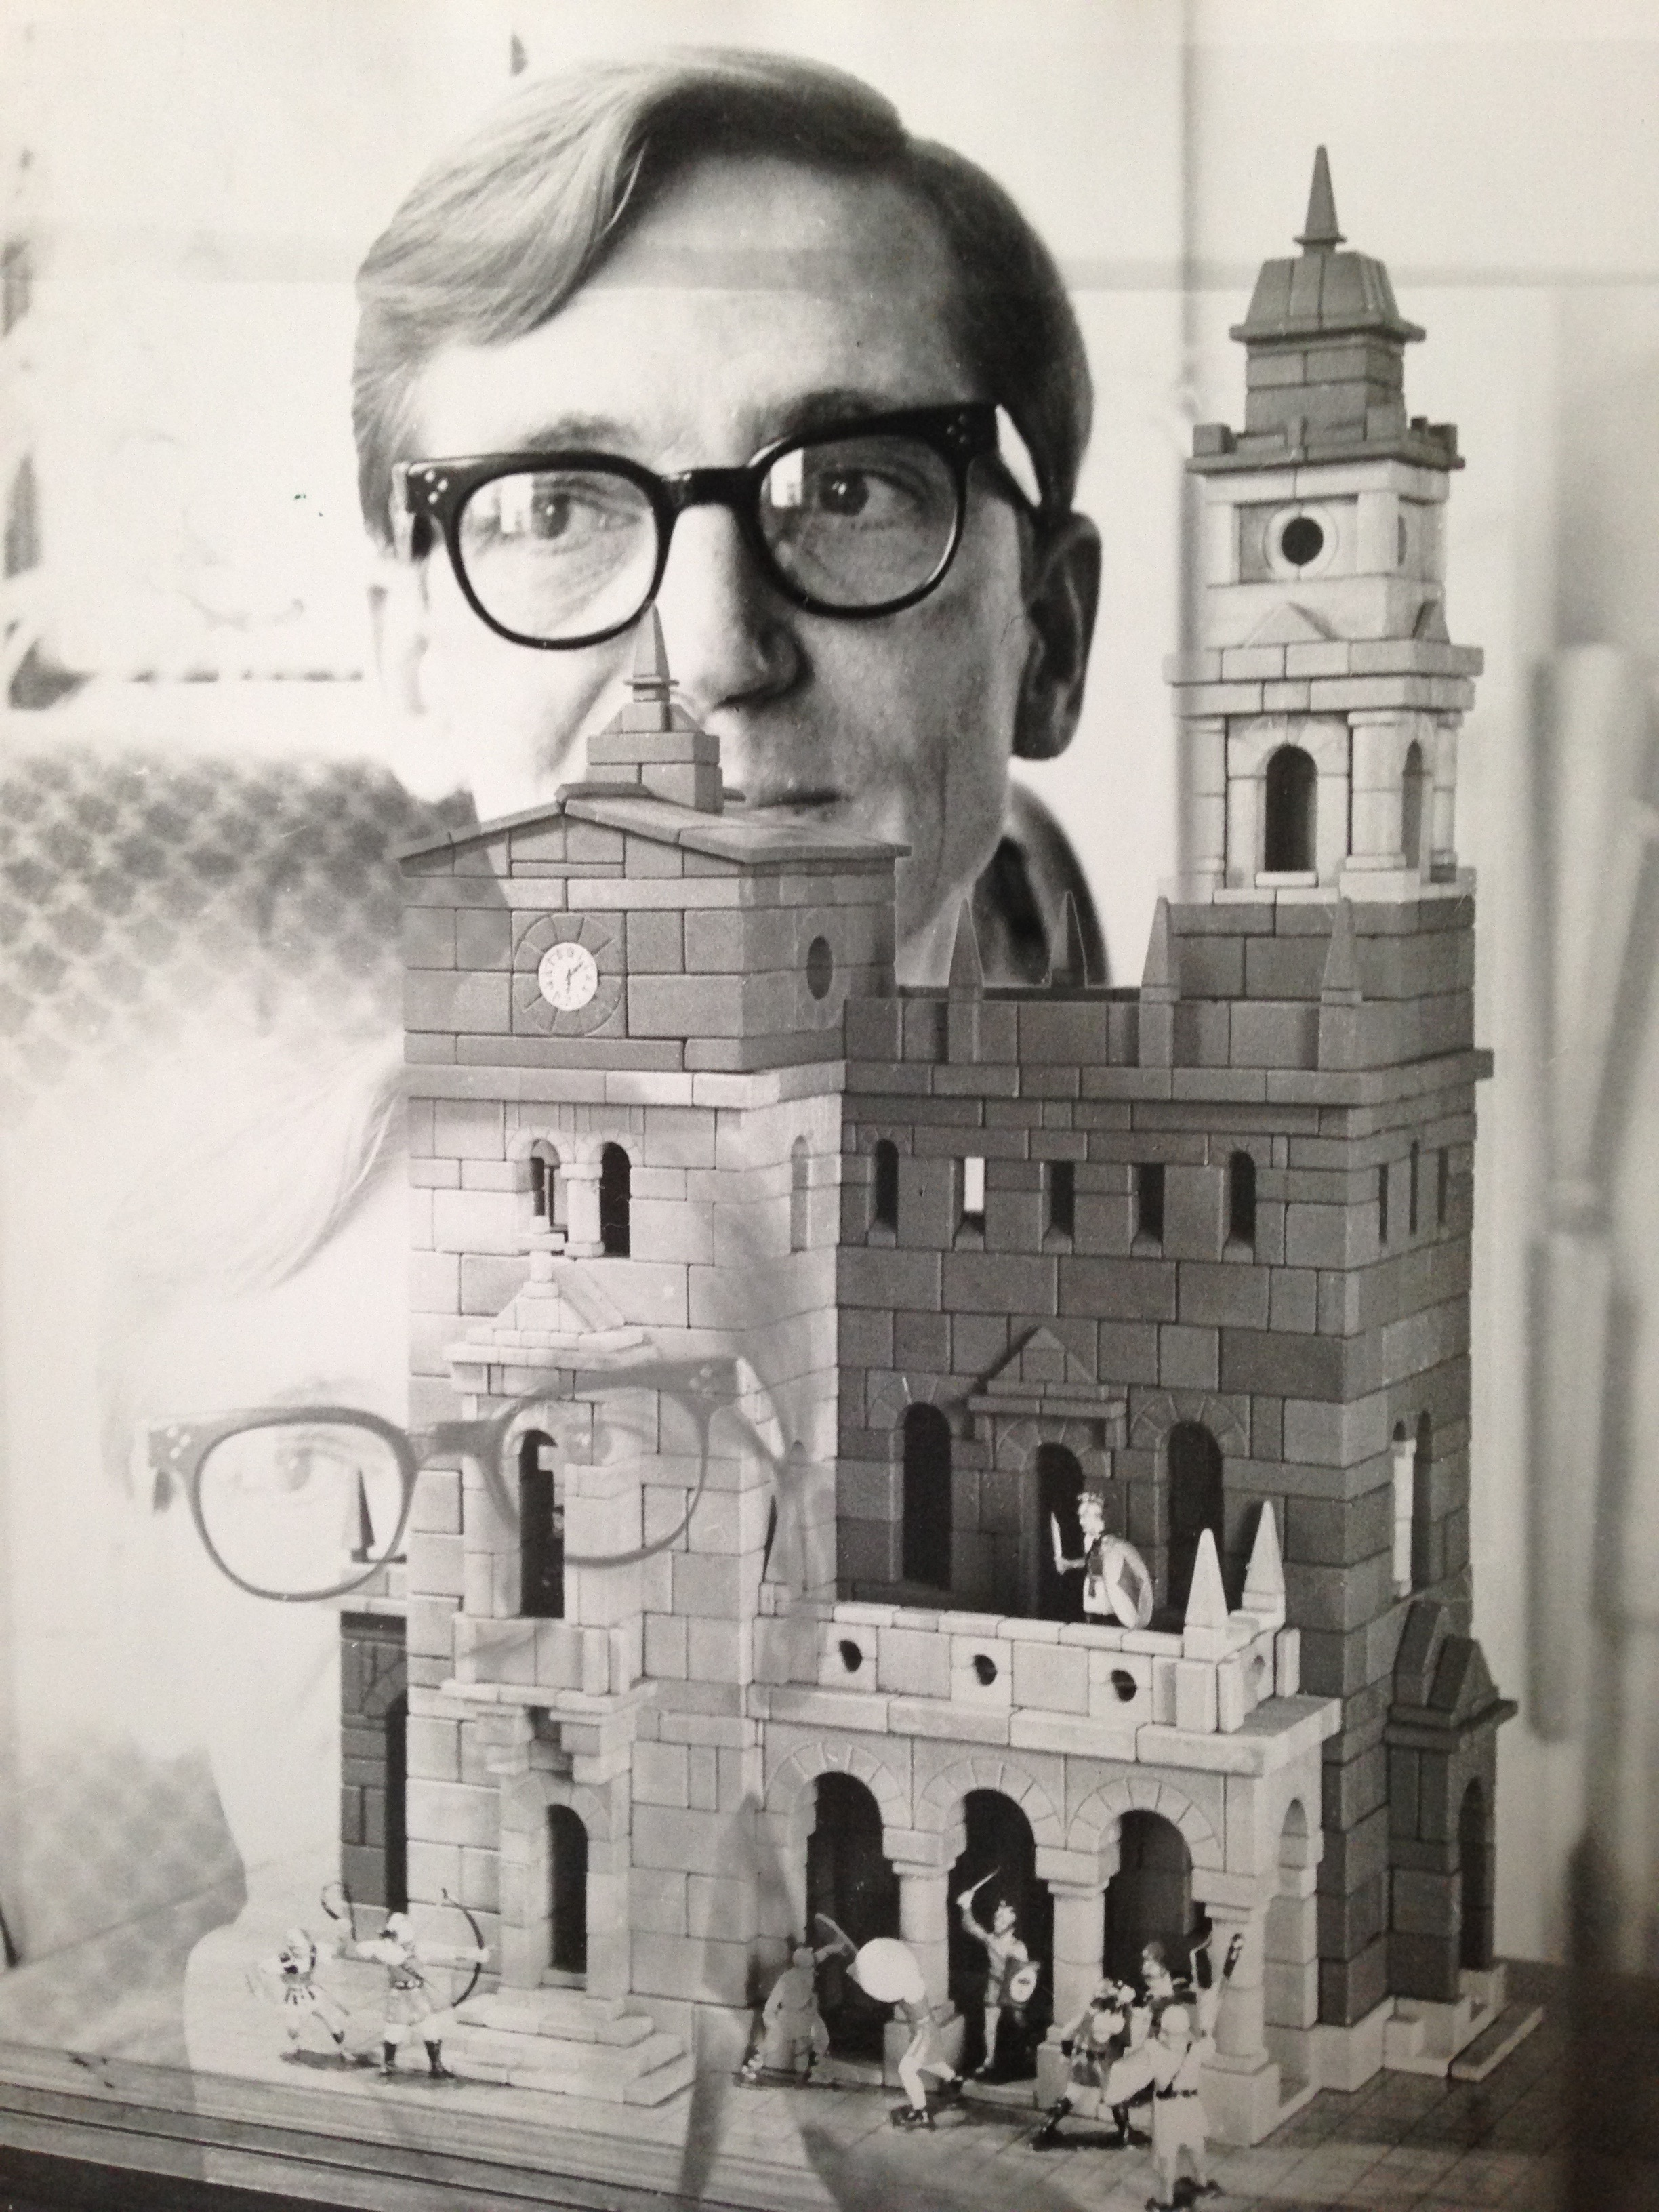 An accidental double exposure: my father, about age 45, and one of his stone block buildings